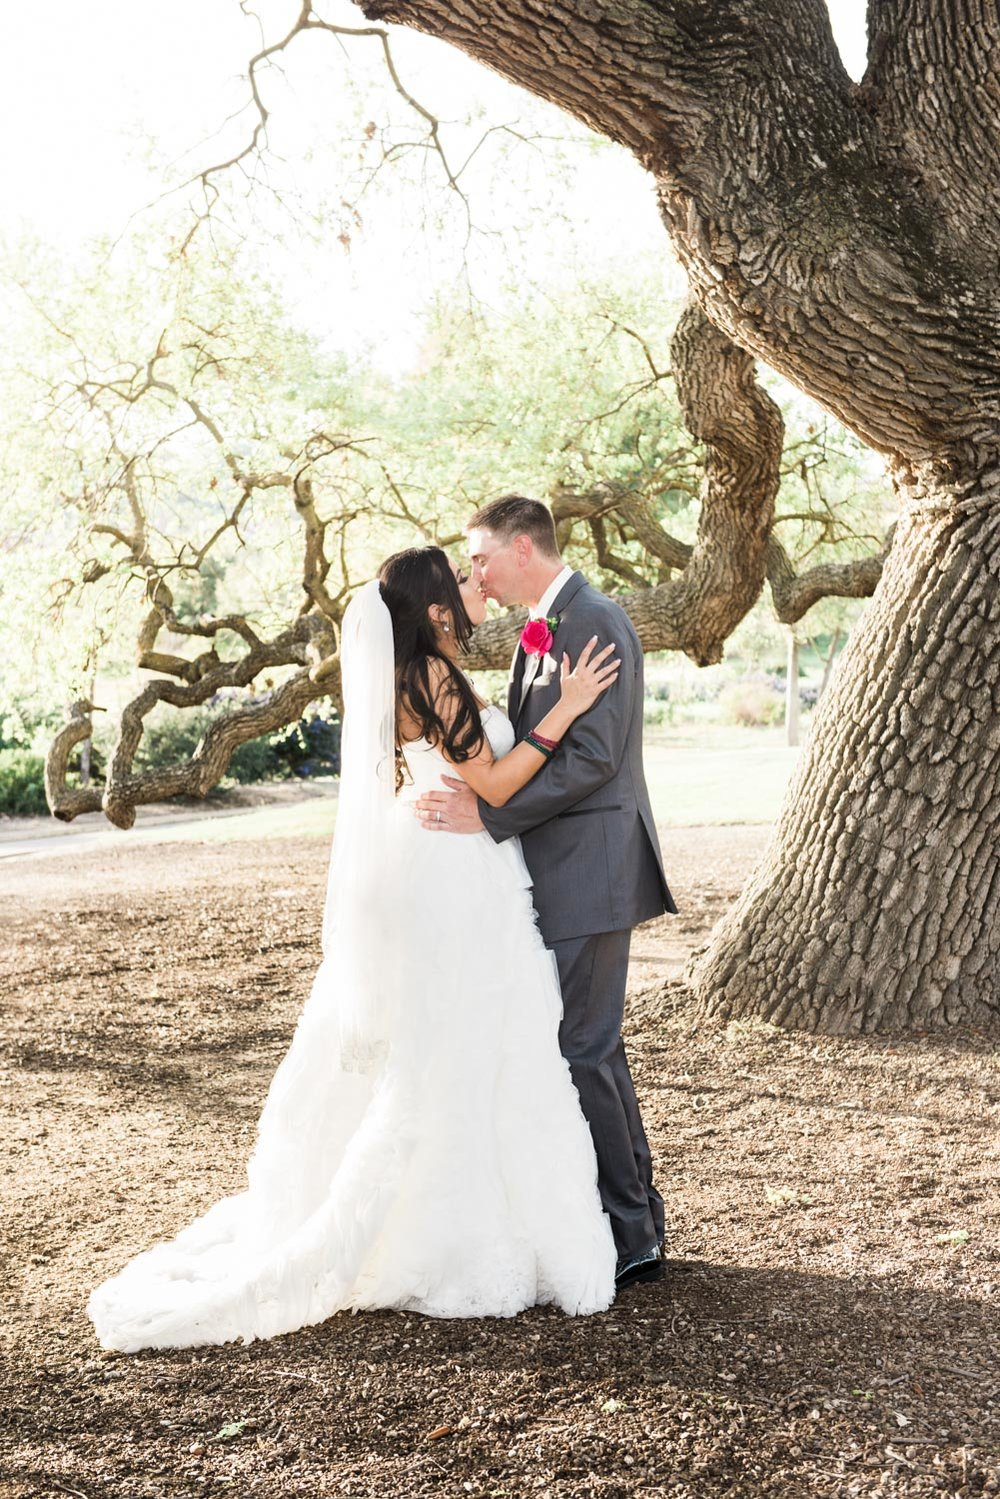 Bride & Groom portraits under the famous tree.